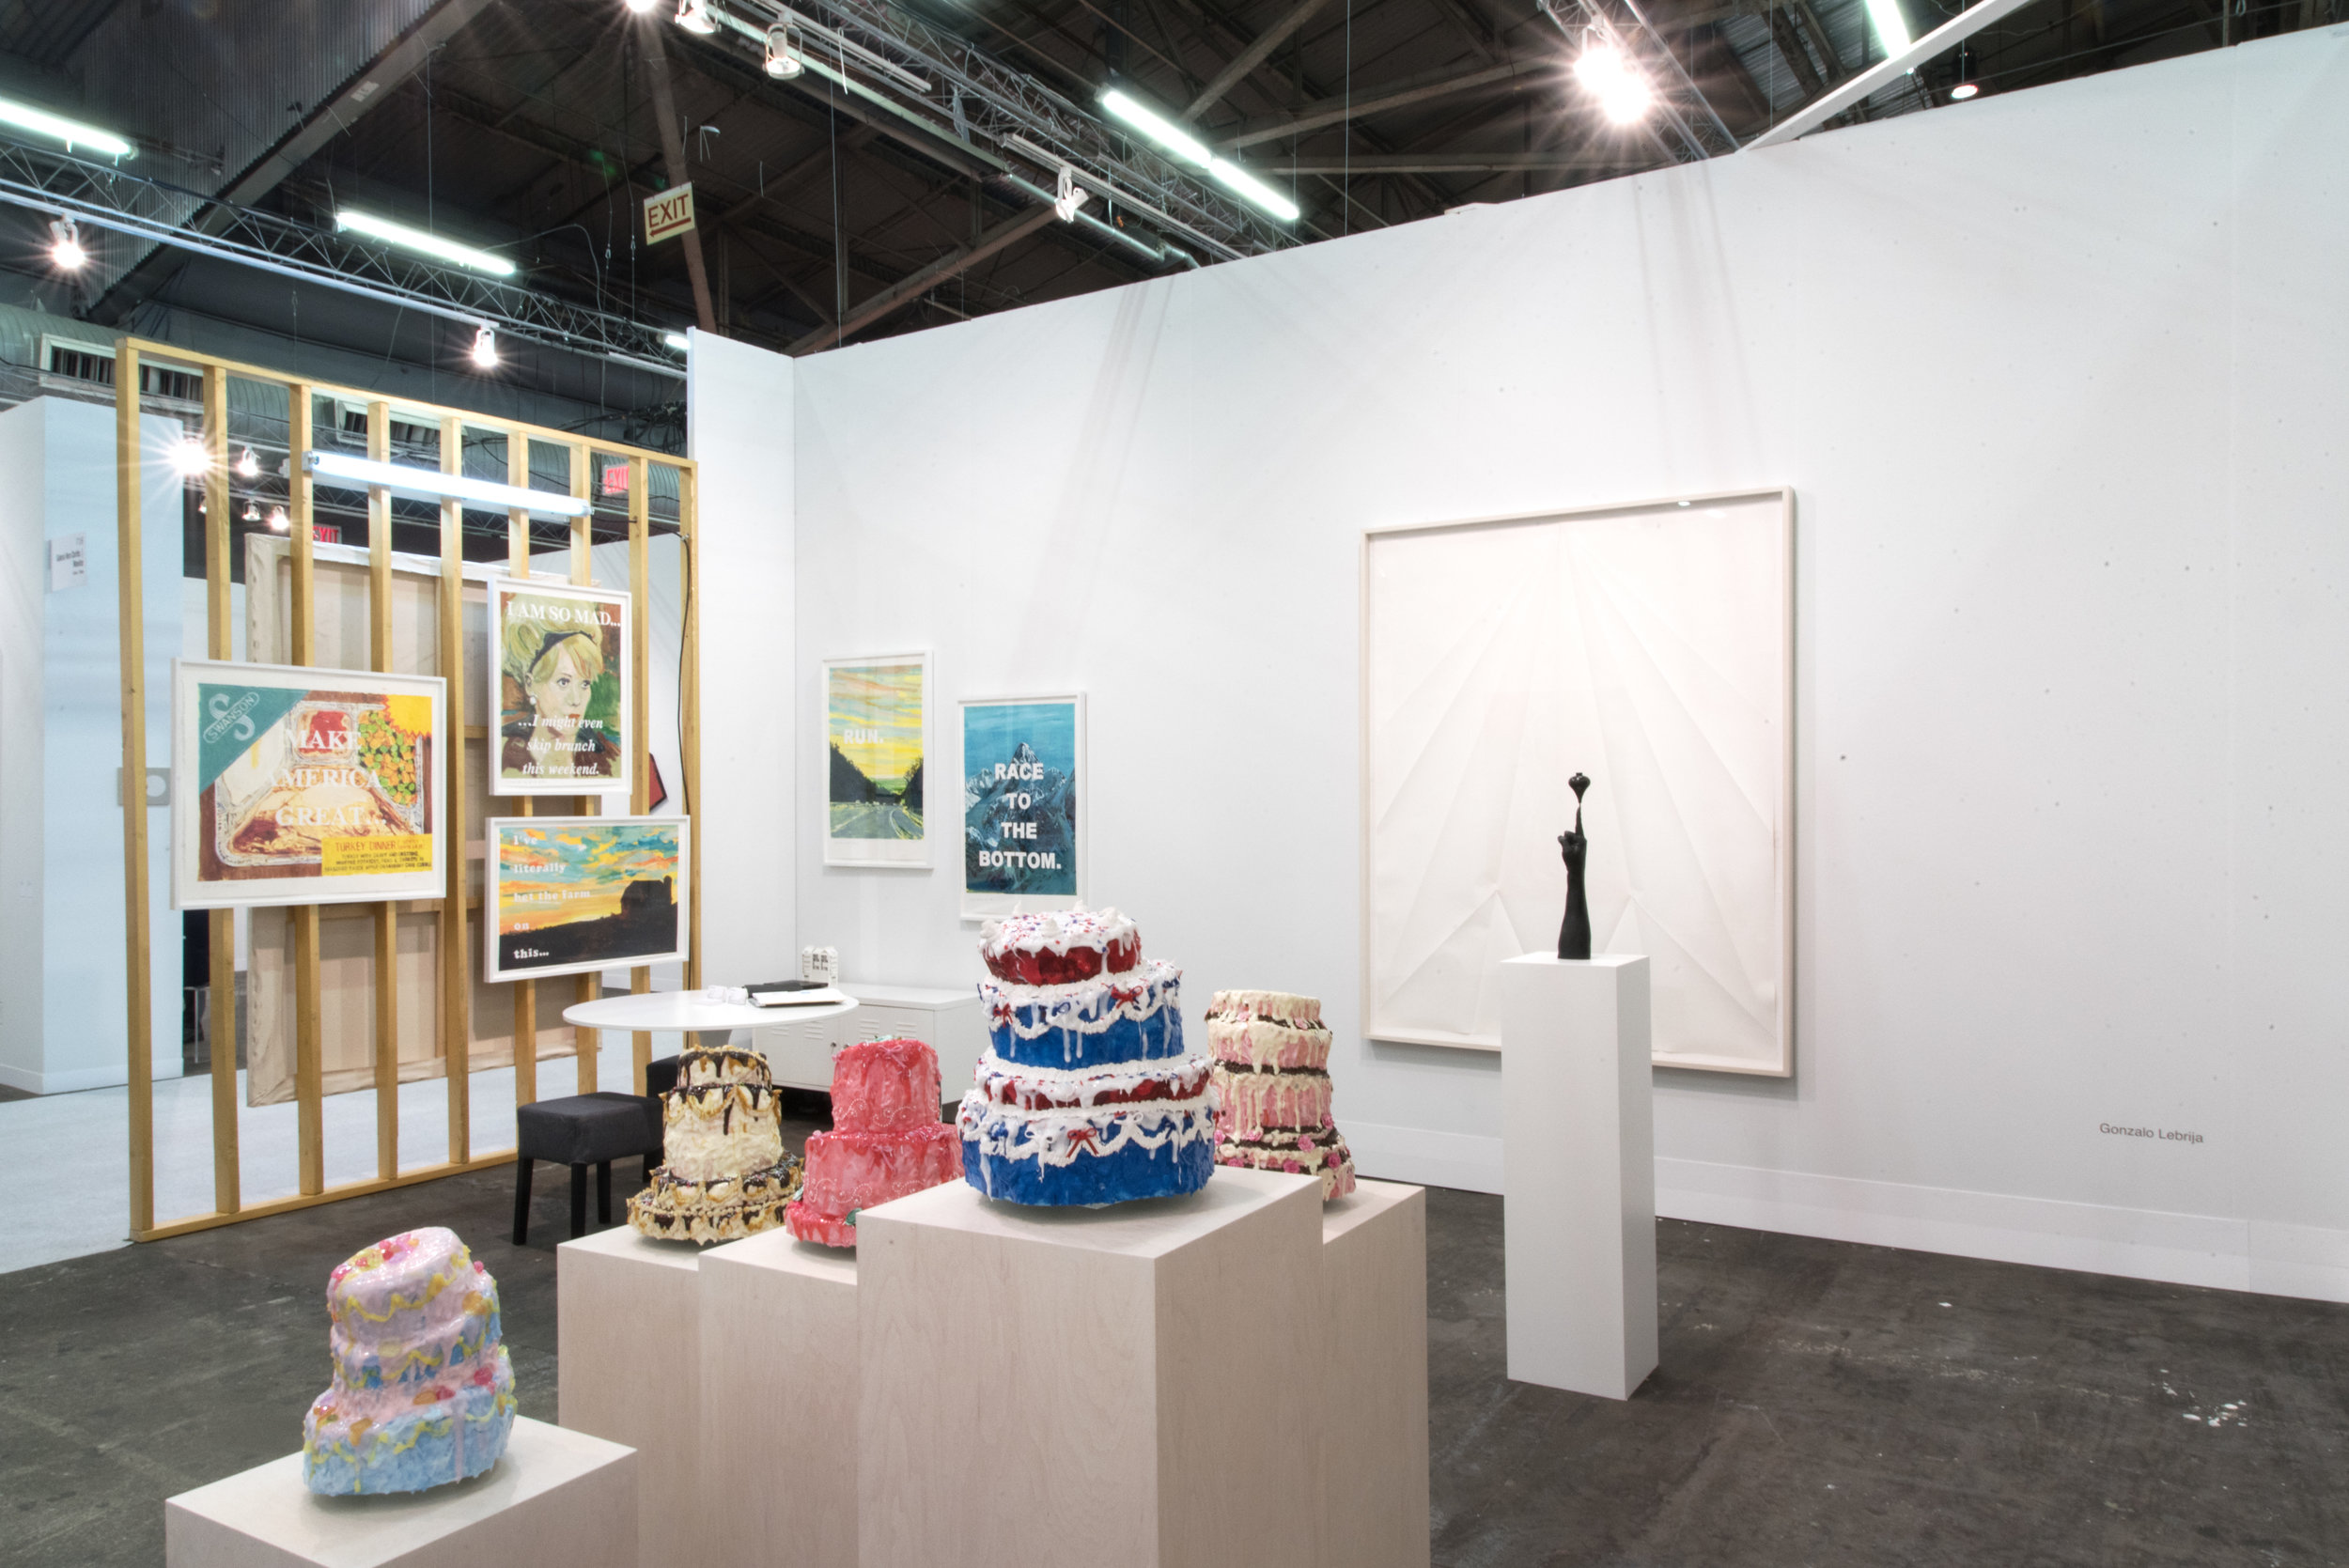 Fair view : Galerie Laurent Godin, Booth 719, March 2017